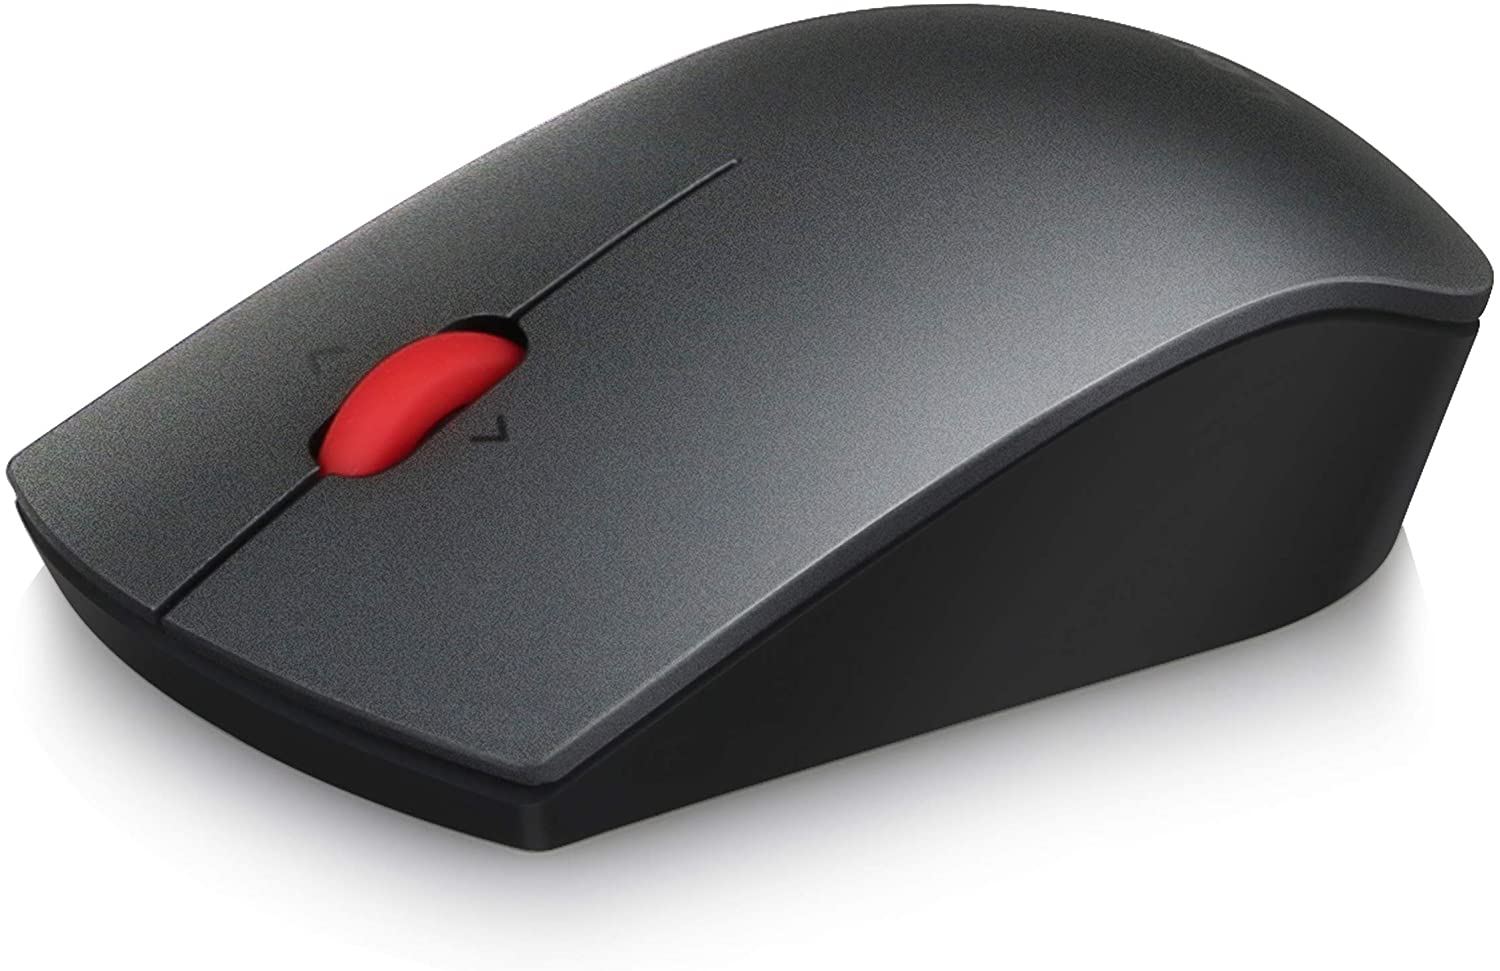 Lenovo 700 Wireless Laser Mouse, Black, 1600 dpi, 2.4 GHz wireless via USB, 4-way scroll wheel, Full-size ergonomic design, Accurate laser sensor, Up to 24 months battery life, GX30N77980